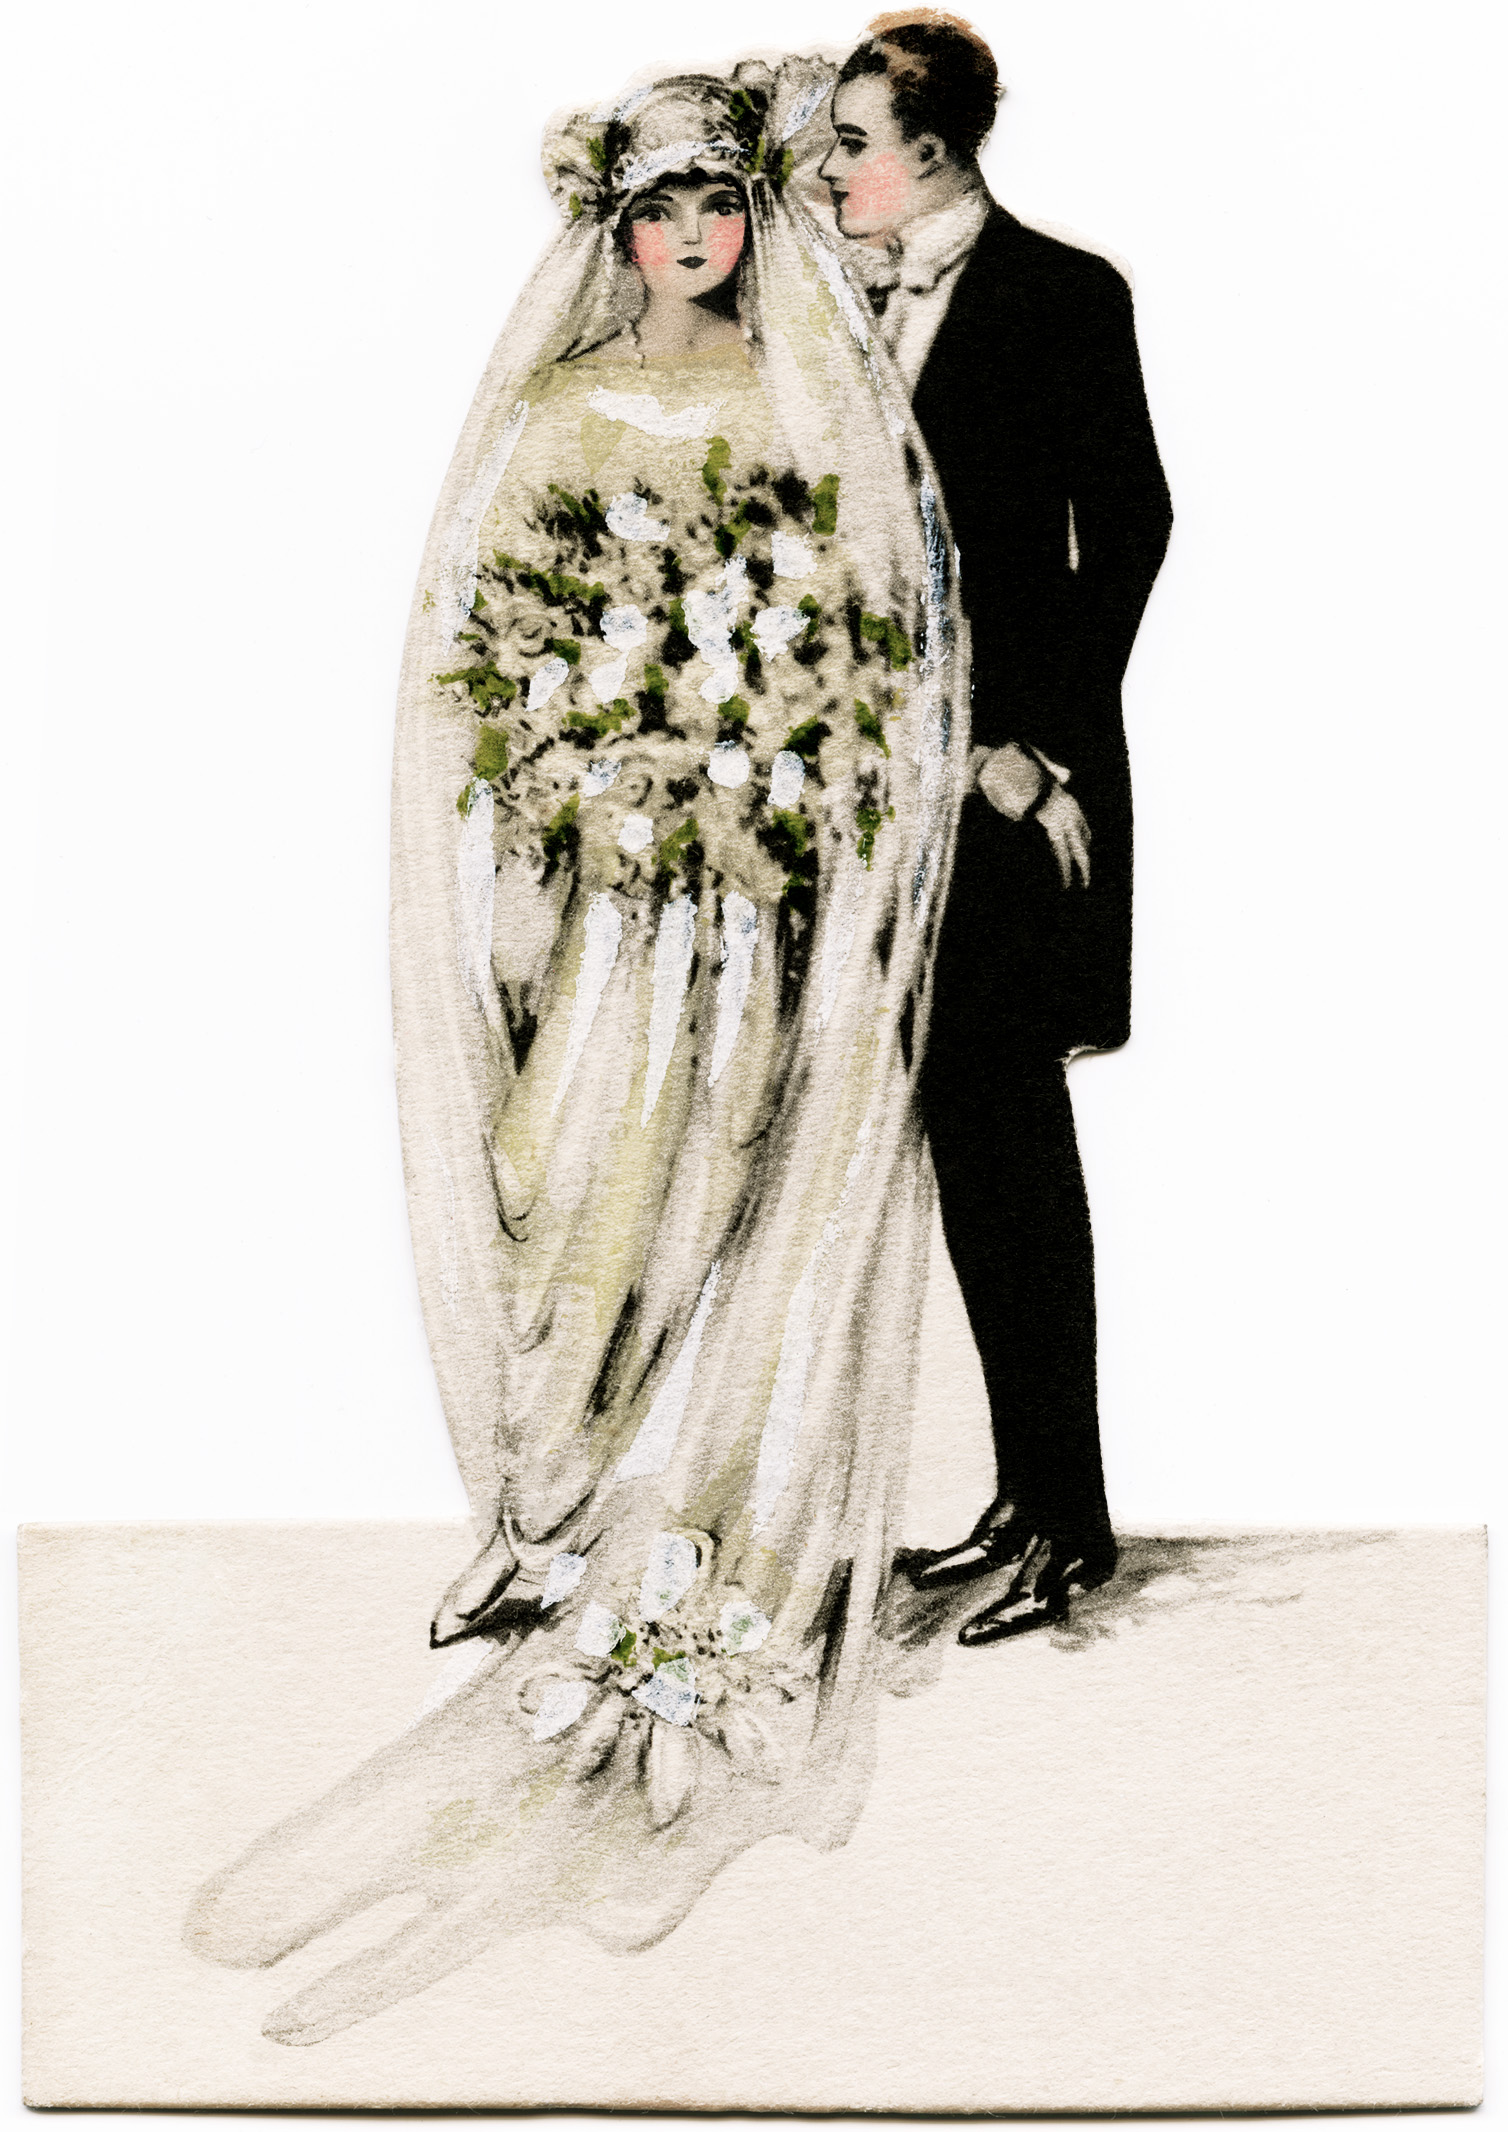 Victorian bride and groom, vintage wedding clipart, antique.